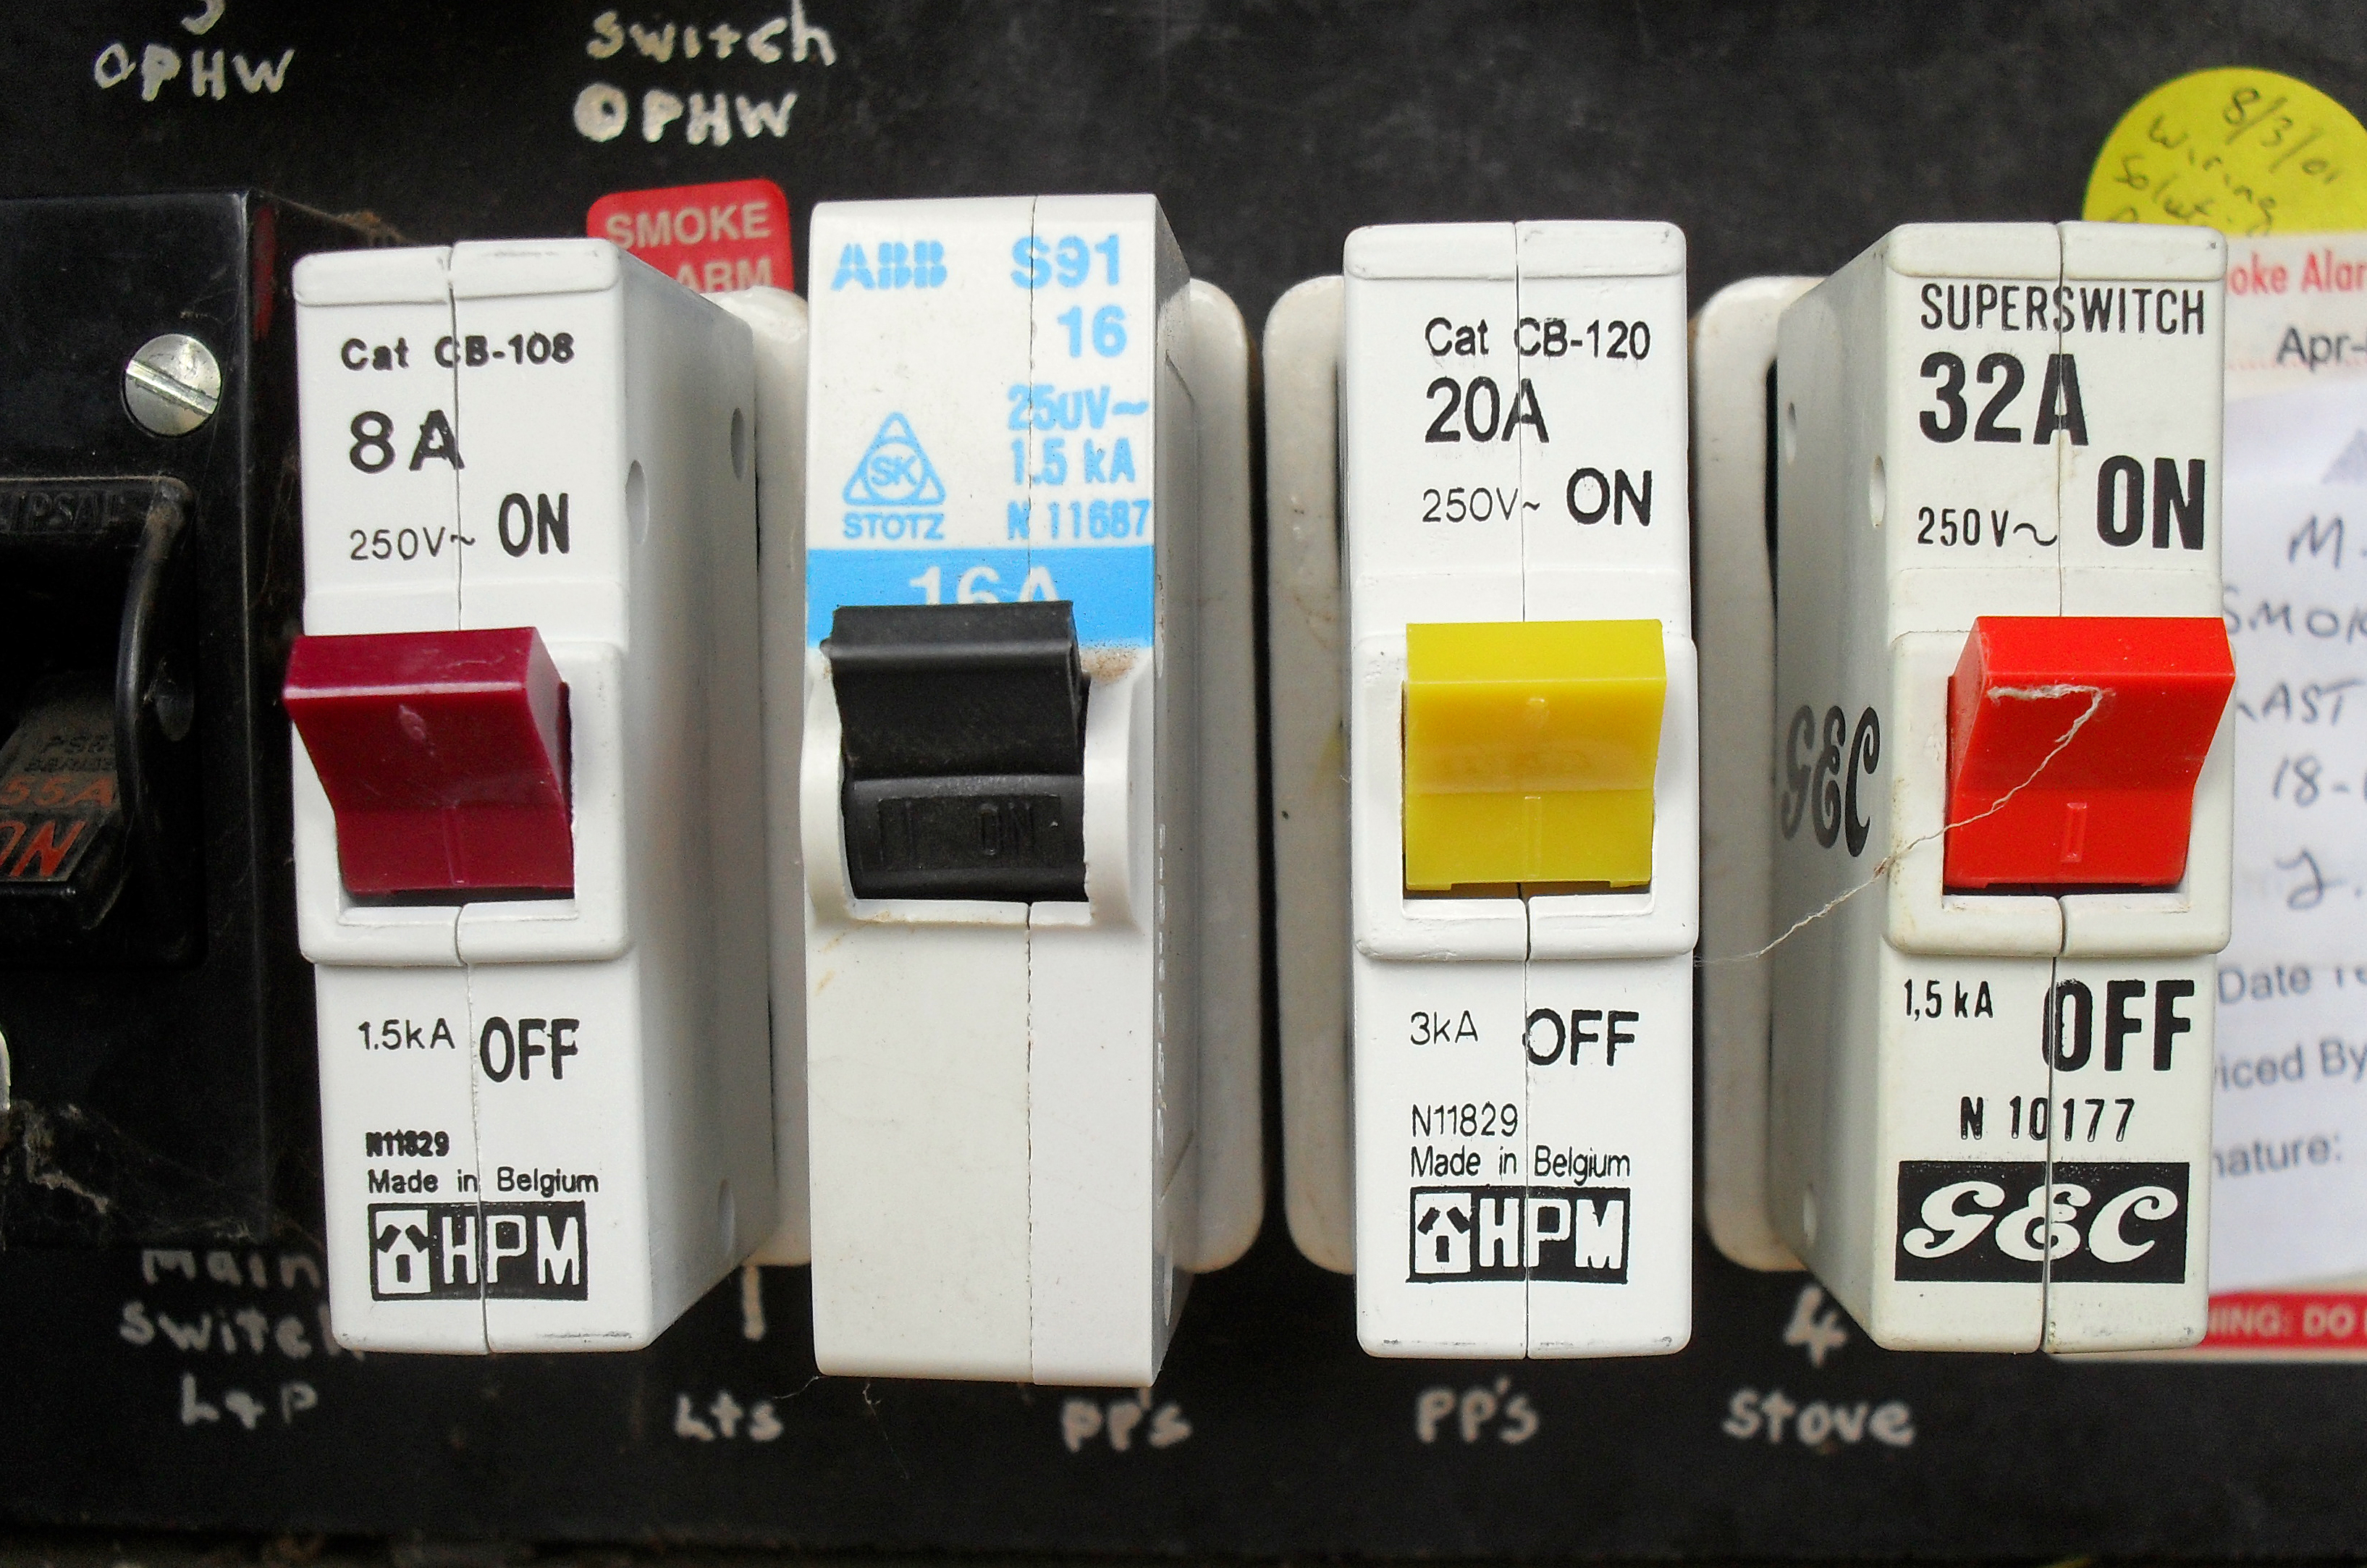 Circuit Breakers 3 Effective Techniques For Managing Your Anger Or Meter And Method Of On Electric Box Installation Diagram Frustration At The Office Blog Andrew Satter Associates Coaching Consulting